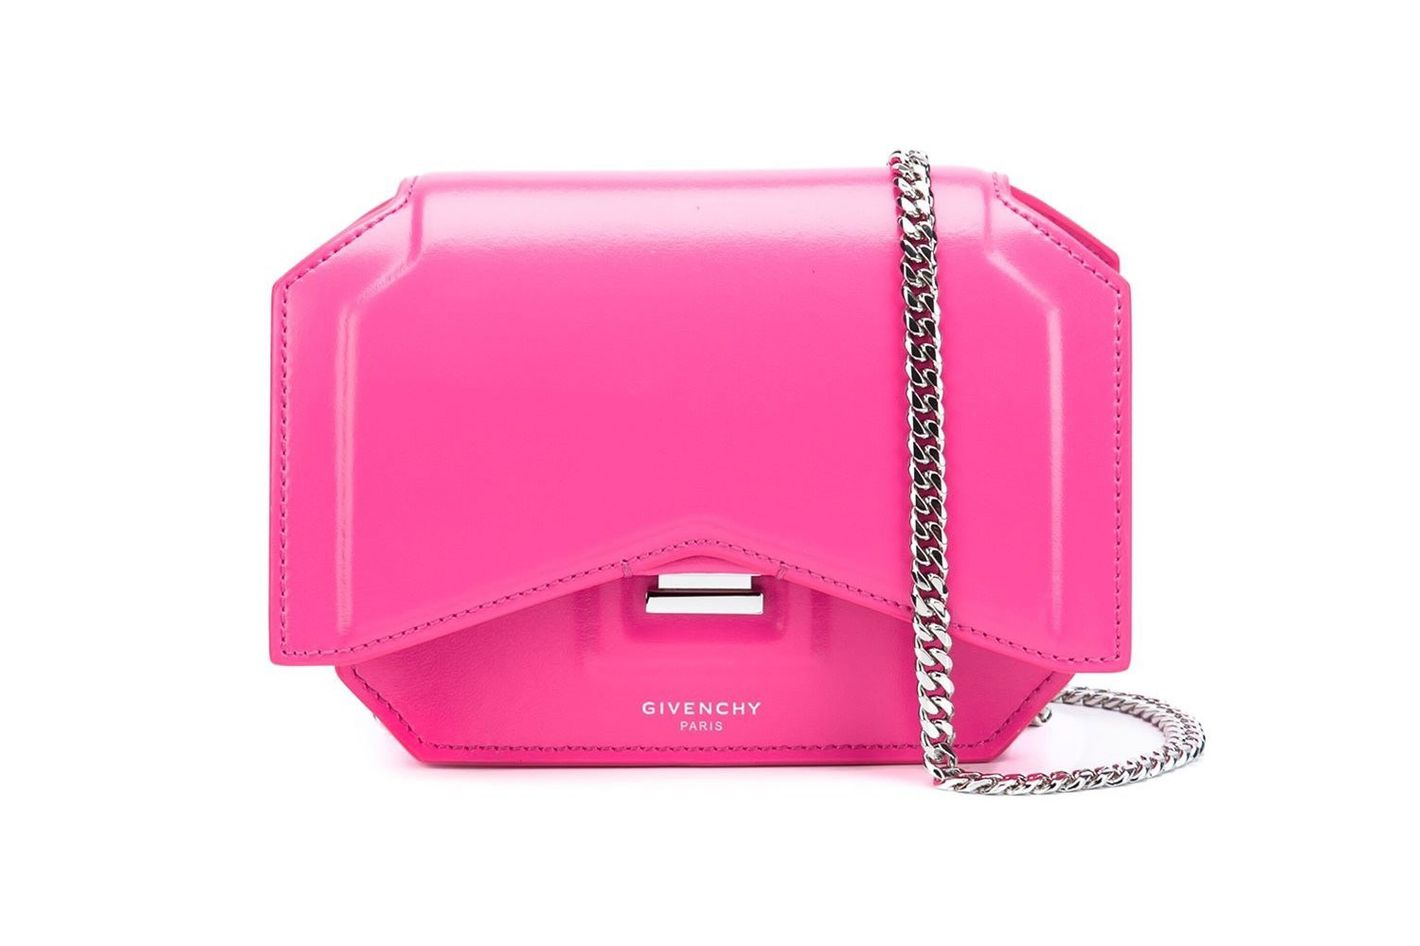 Givenchy mini Bow-Cut crossbody bag